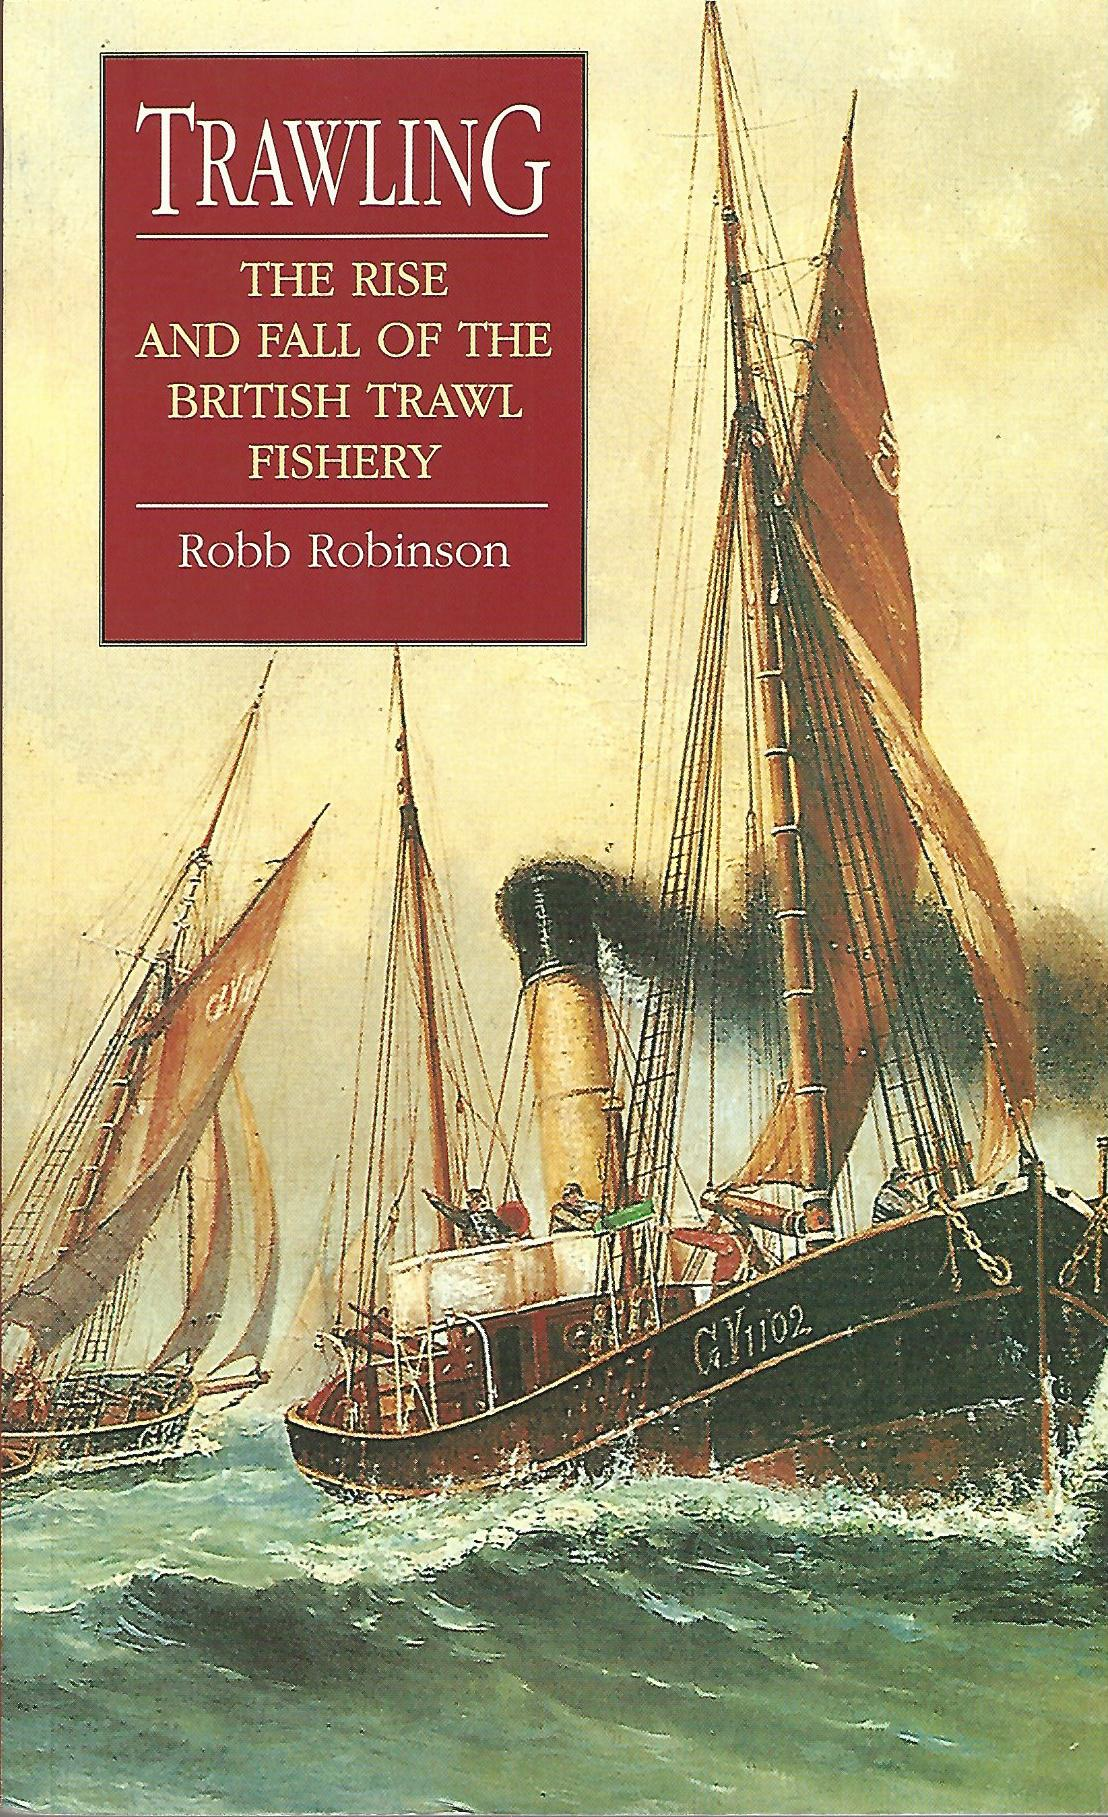 Image for Trawling: The Rise and Fall of the British Trawl Fishery.